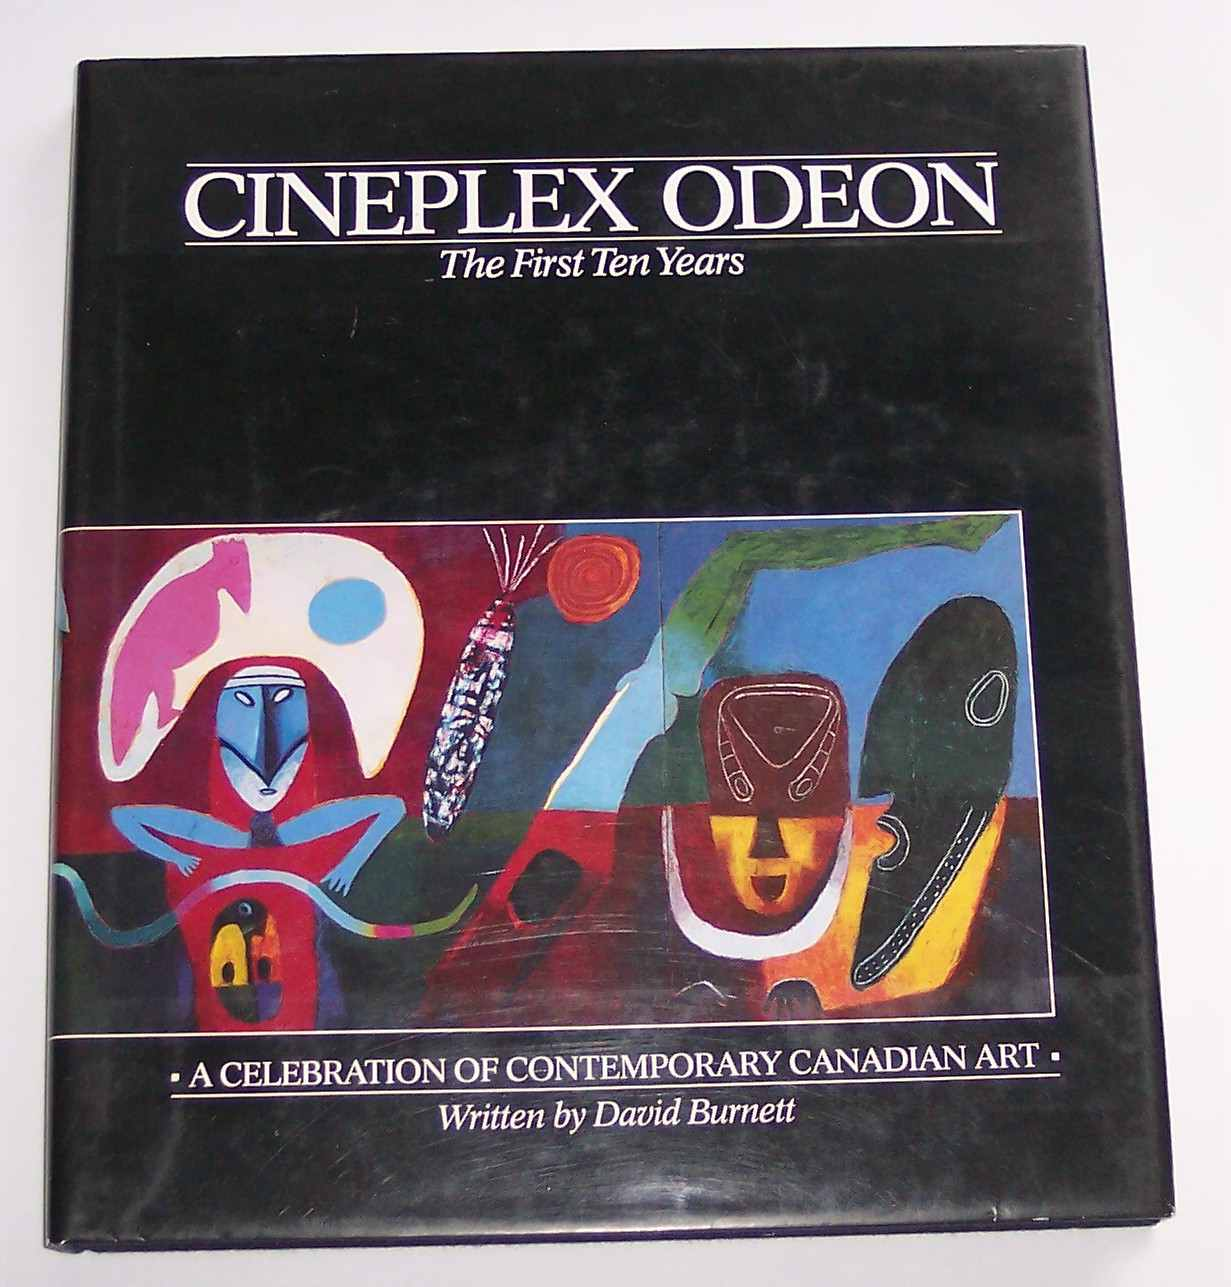 Image for Cineplex Odeon, the First Ten Years: a Celebration of Contemporary Canadian Art